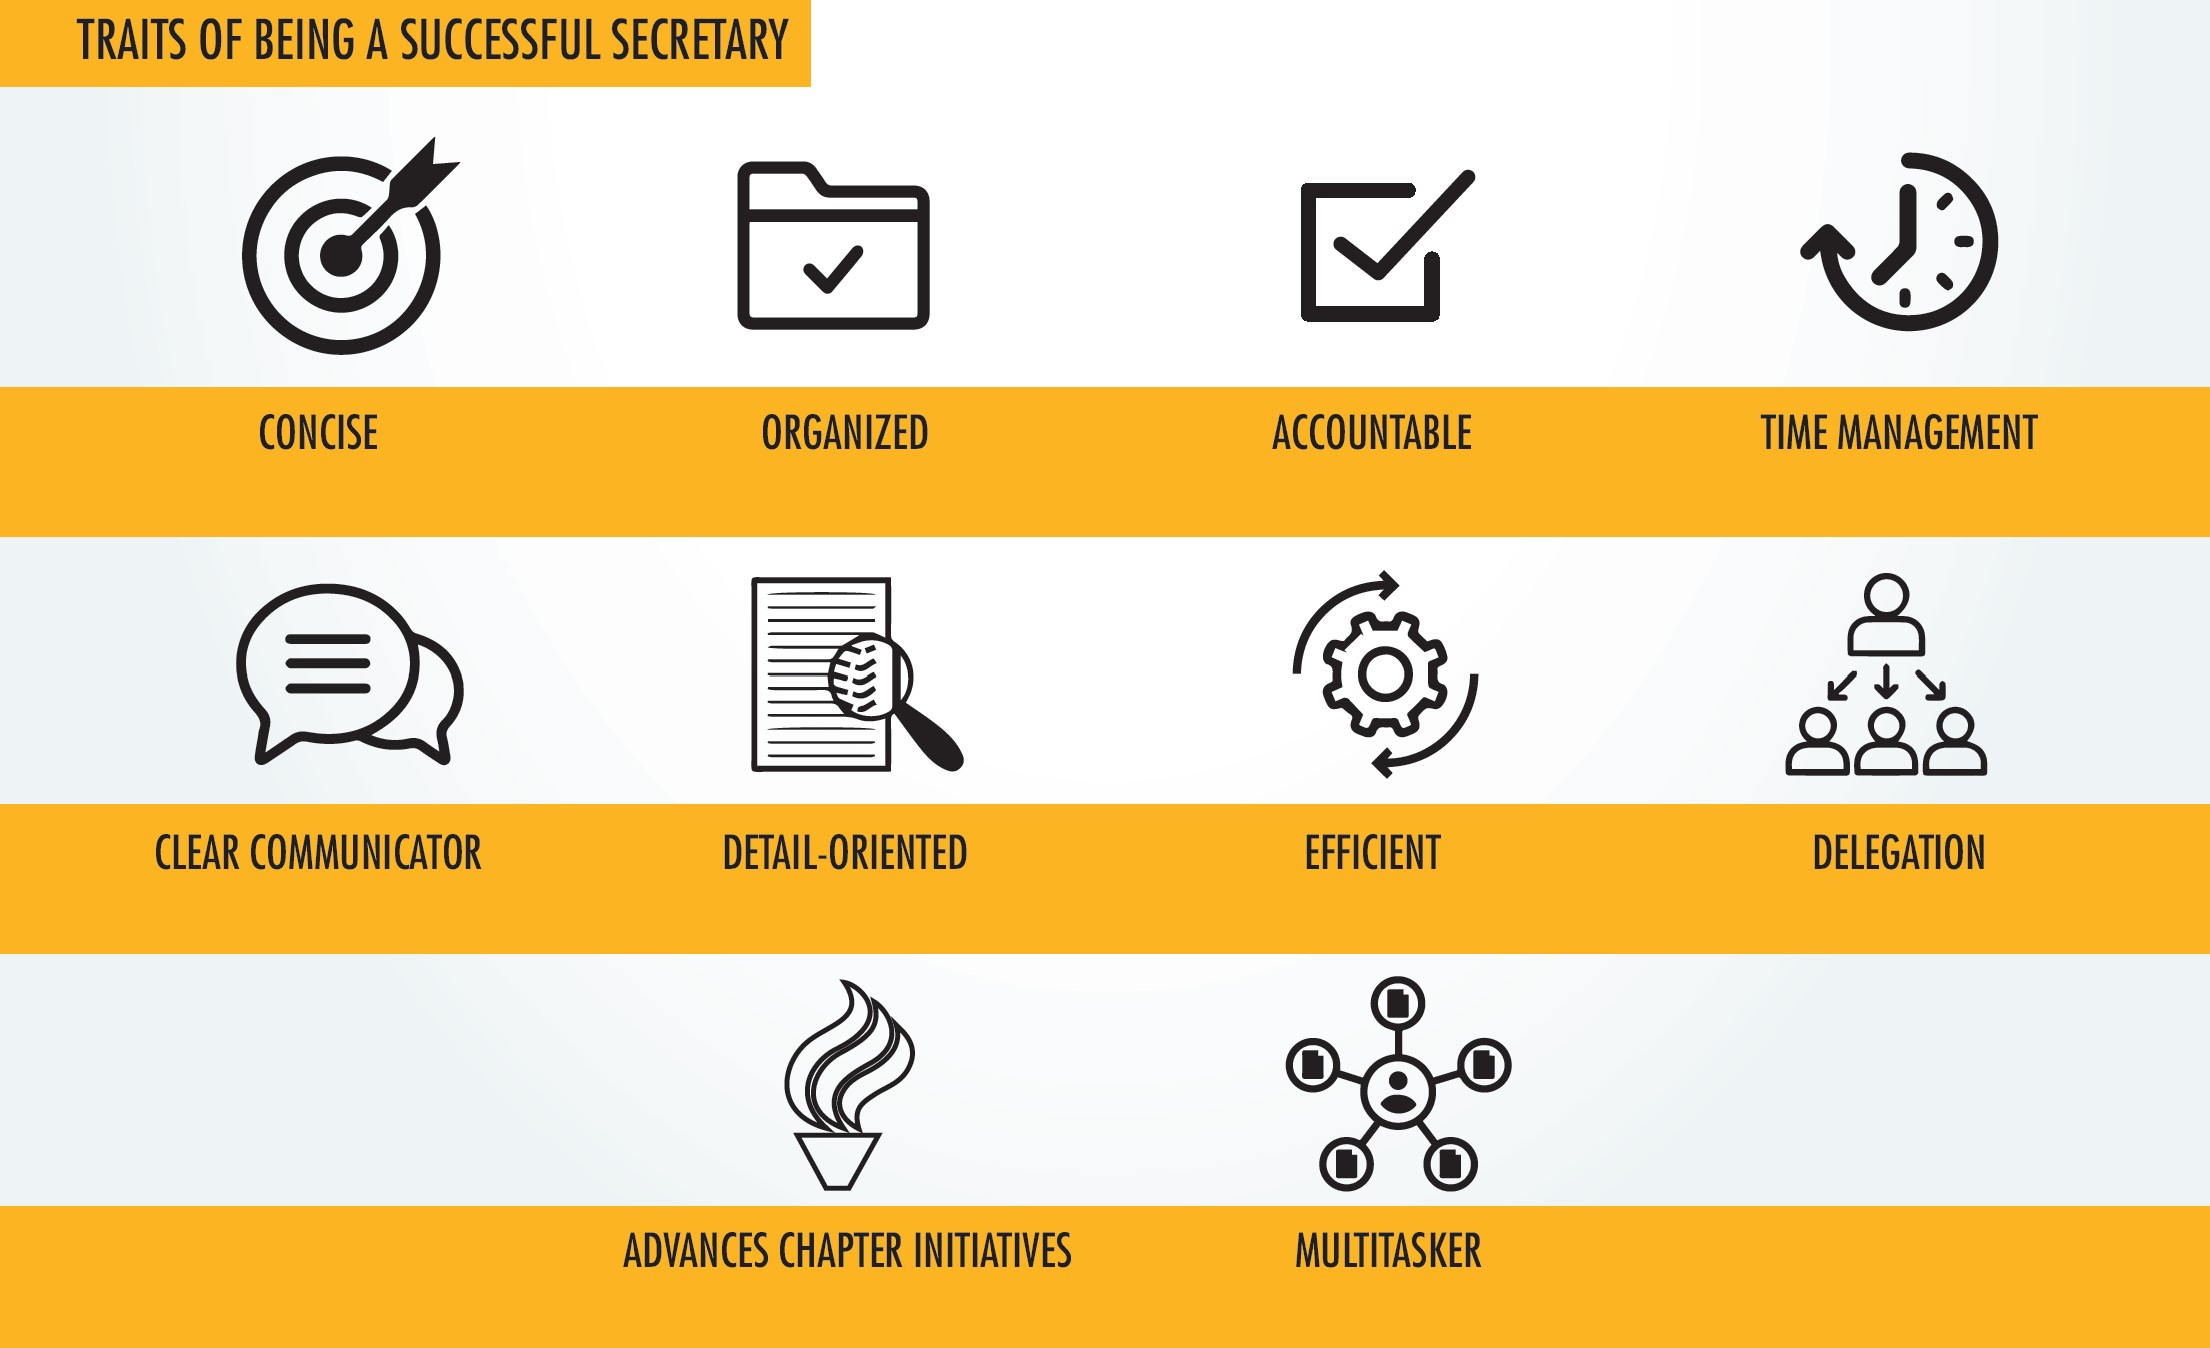 Traits of a secretary: Concise, organized, accountable, time management, clear communicator, detail-oriented, efficient, delegation, advances chapter initiatives, multitasker